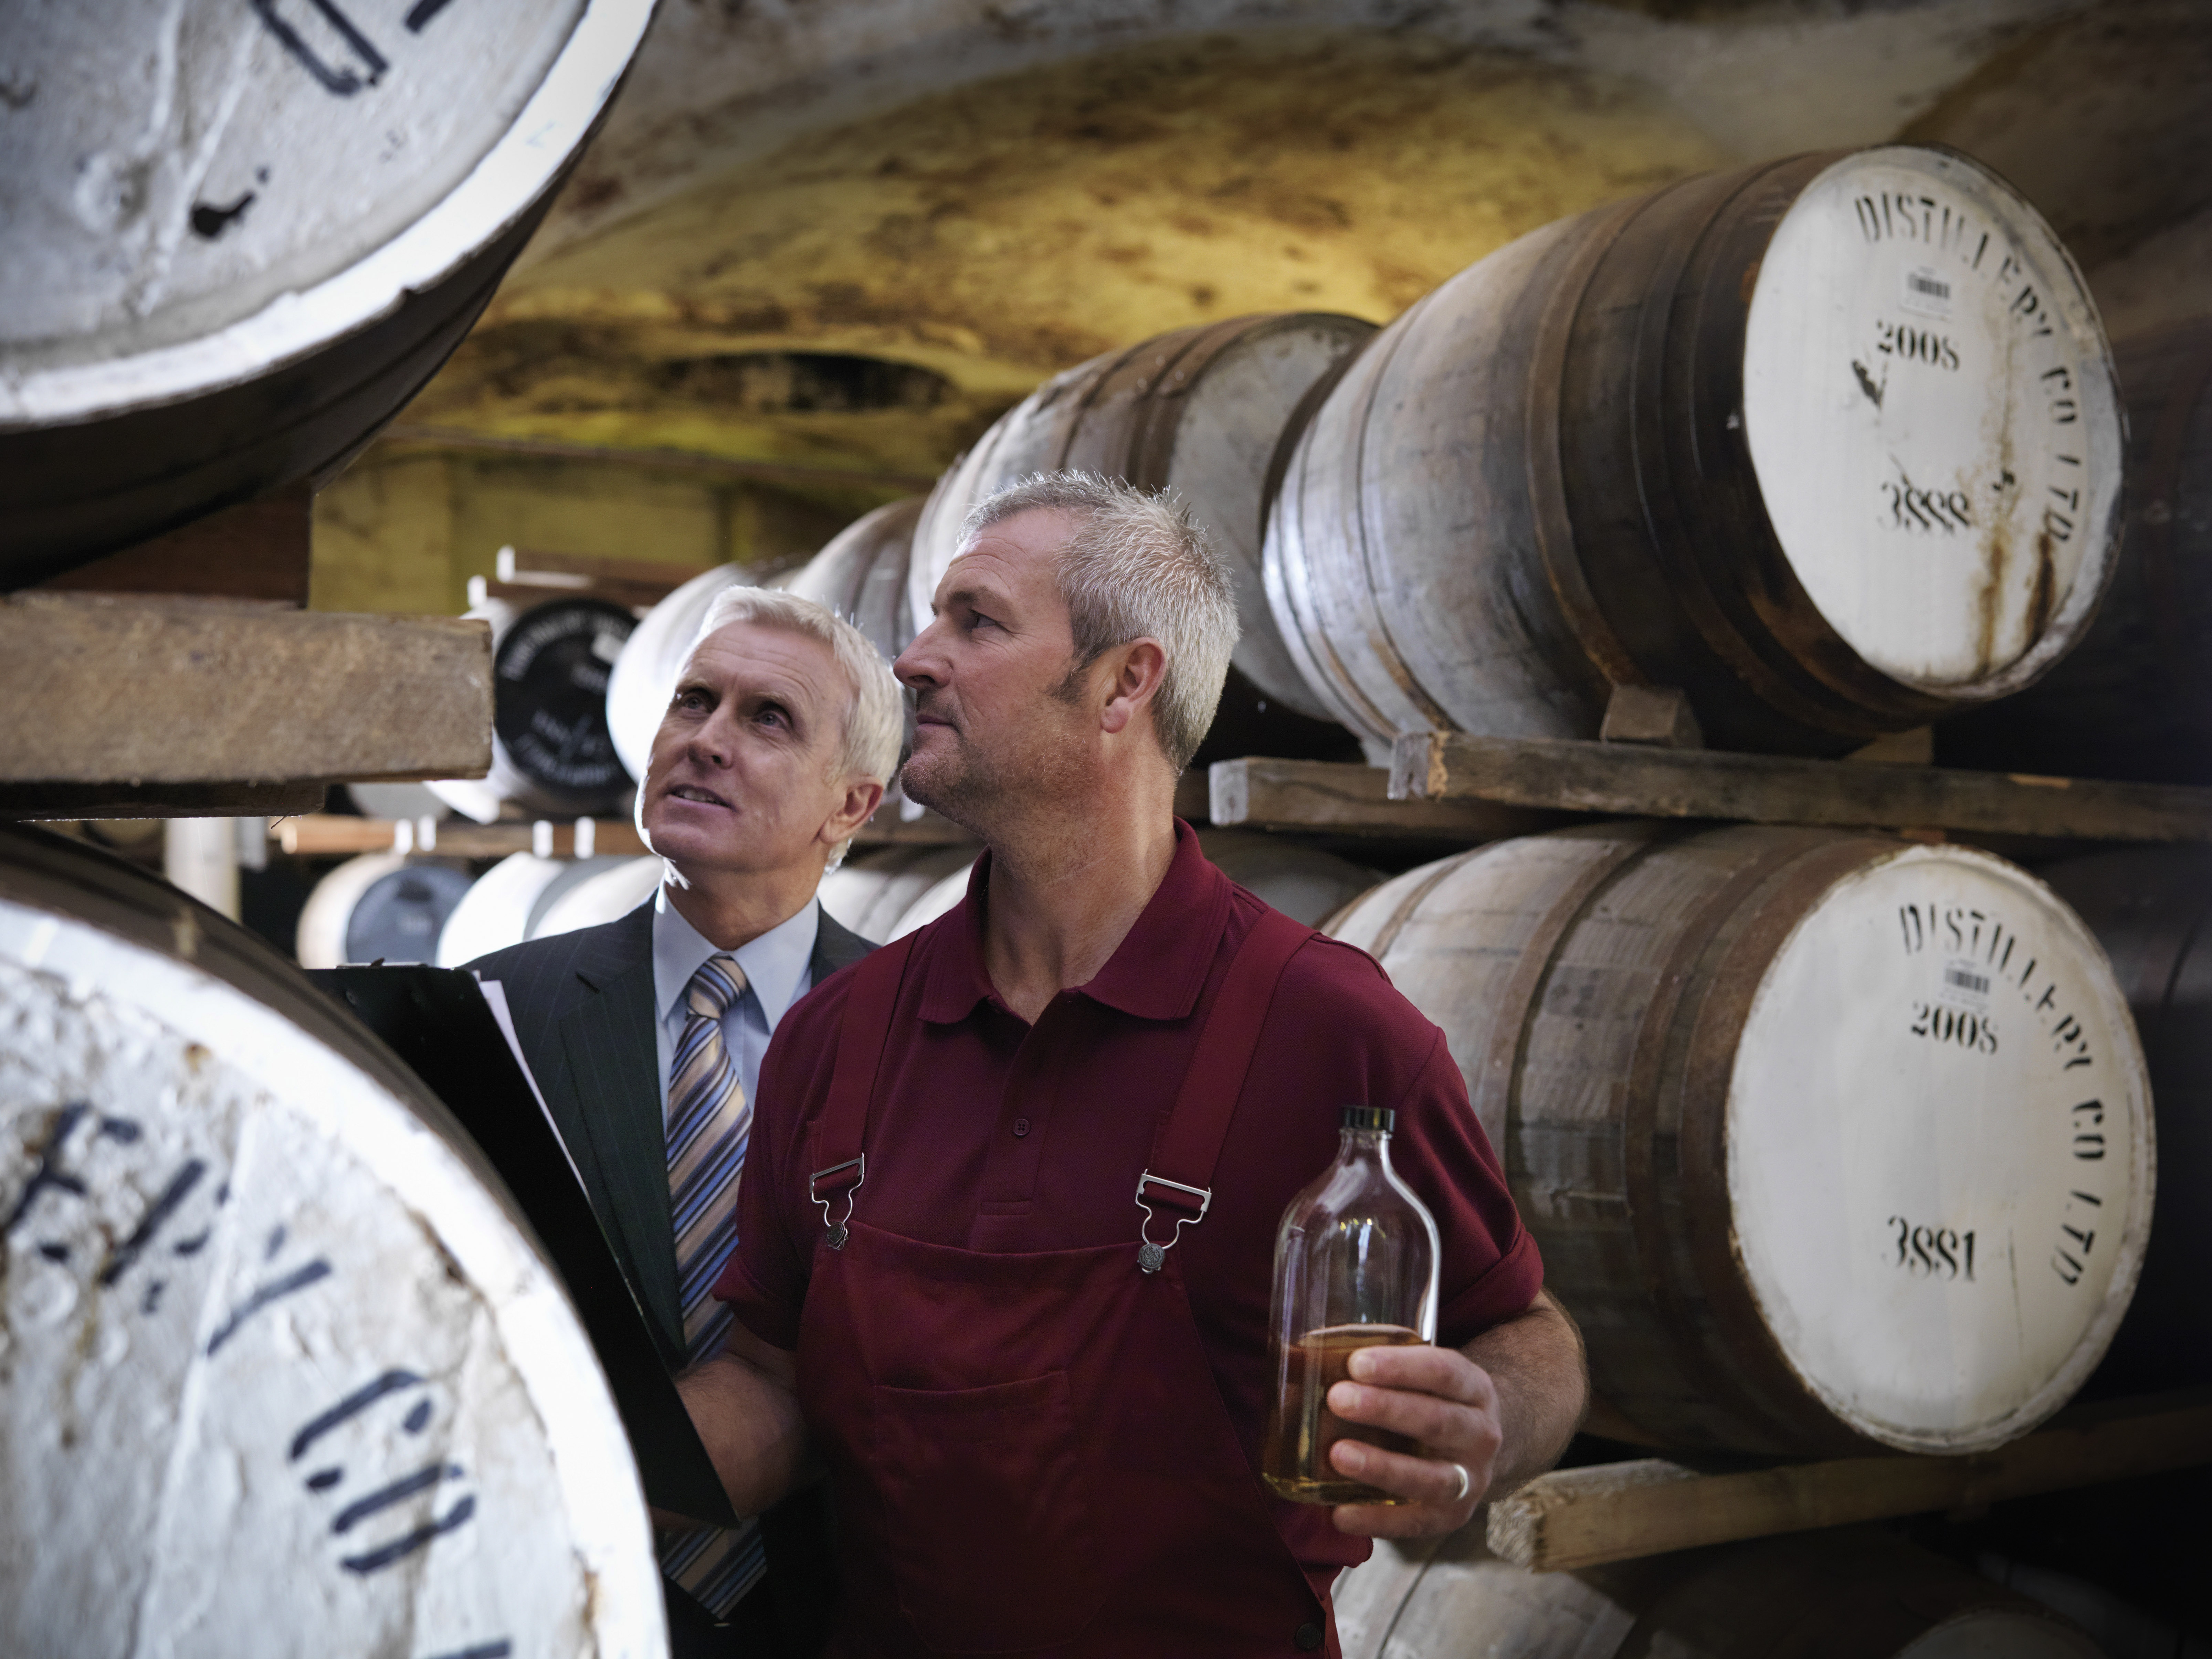 Image showing workers checking whisky in distillery - demand for Business ByDesign is growing in small and mid-sized businesses